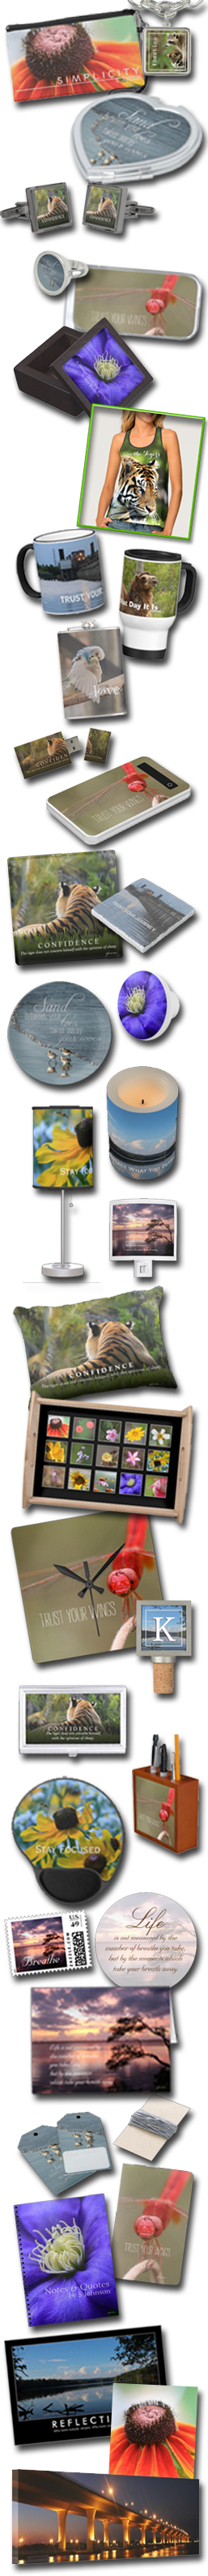 Custom Personalized Products Inspired by Nature Photography